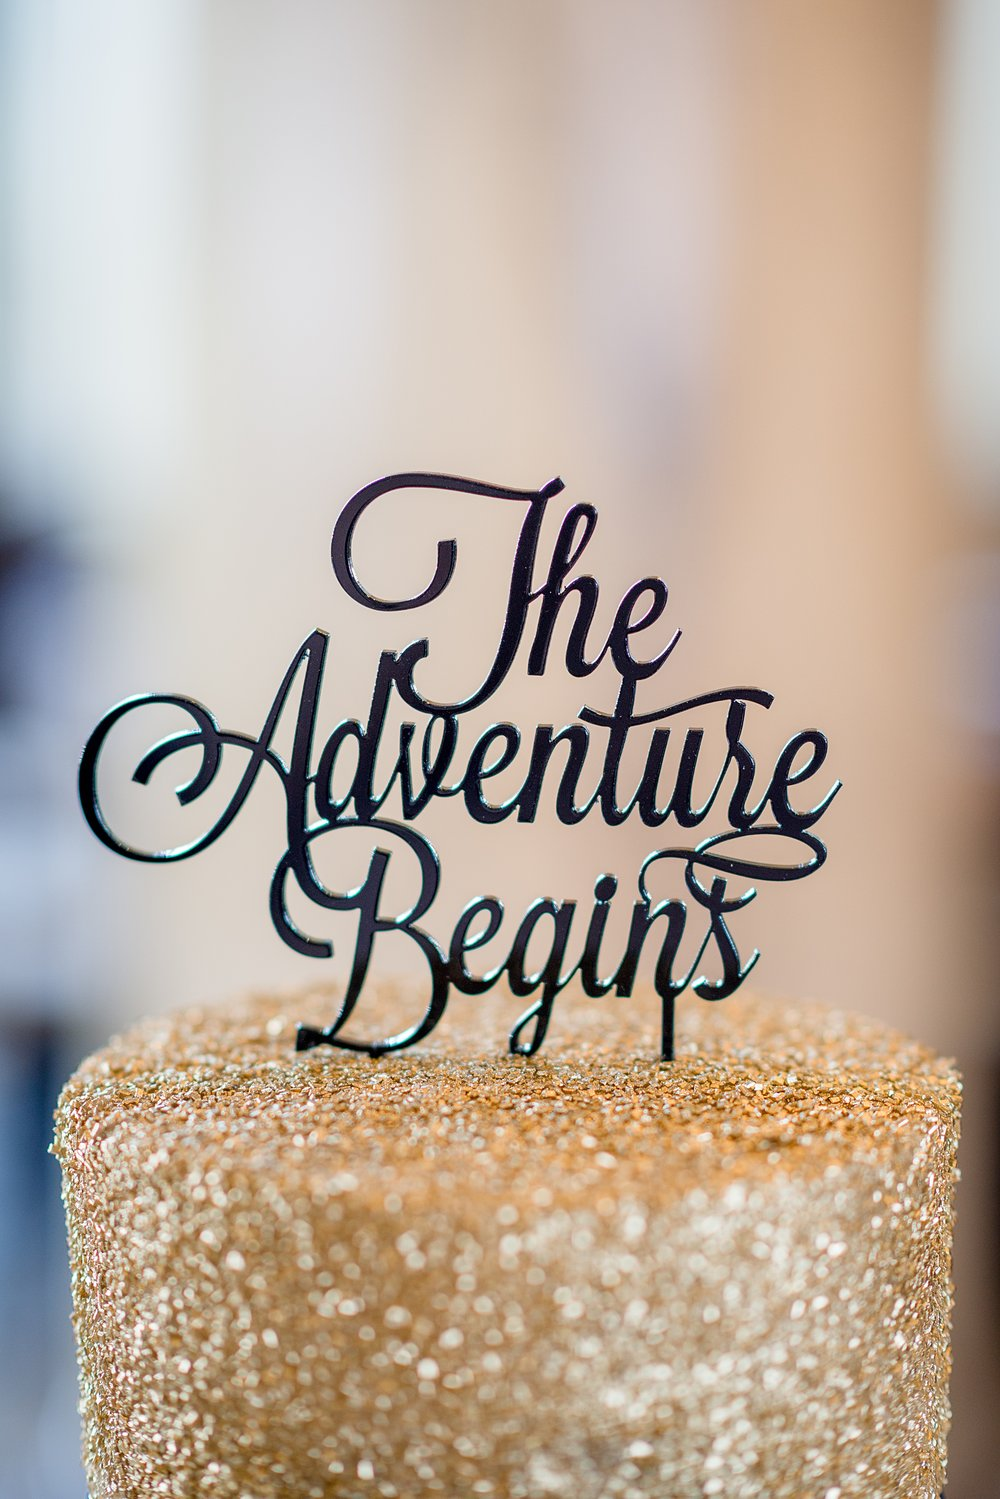 Pipers at the Marott Wedding | Indianapolis Wedding Venue | Indiana Wedding Venue | The Adventure Begins Cake Topper | Glitter Gold Cake